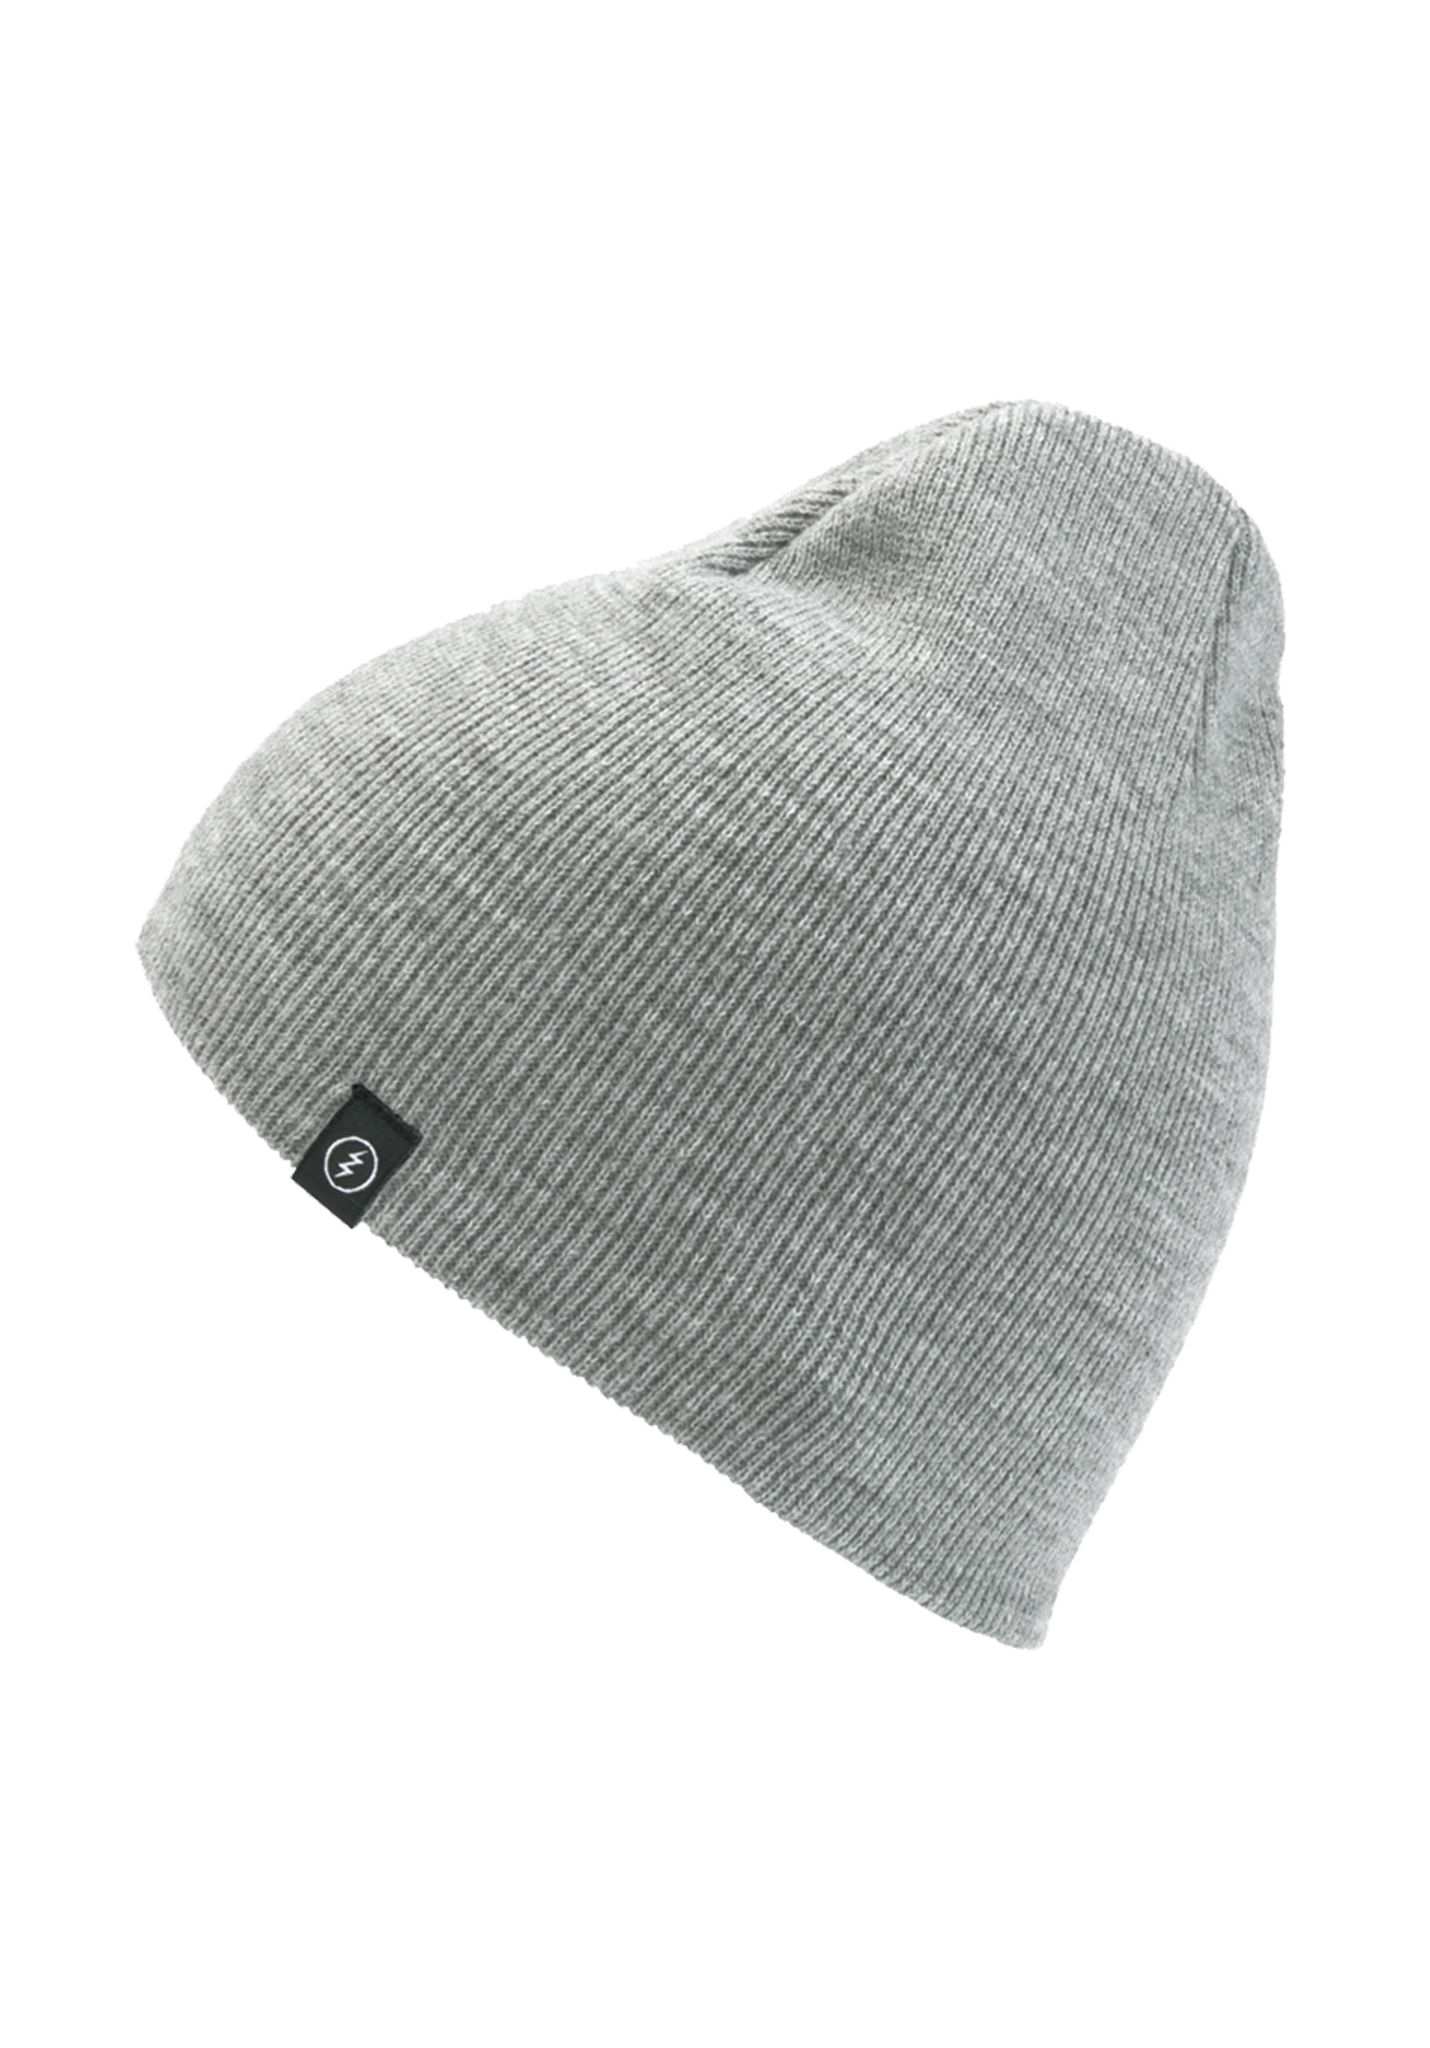 Electric Bender II - Beanie - Grey - Planet Sports a149d221e4d